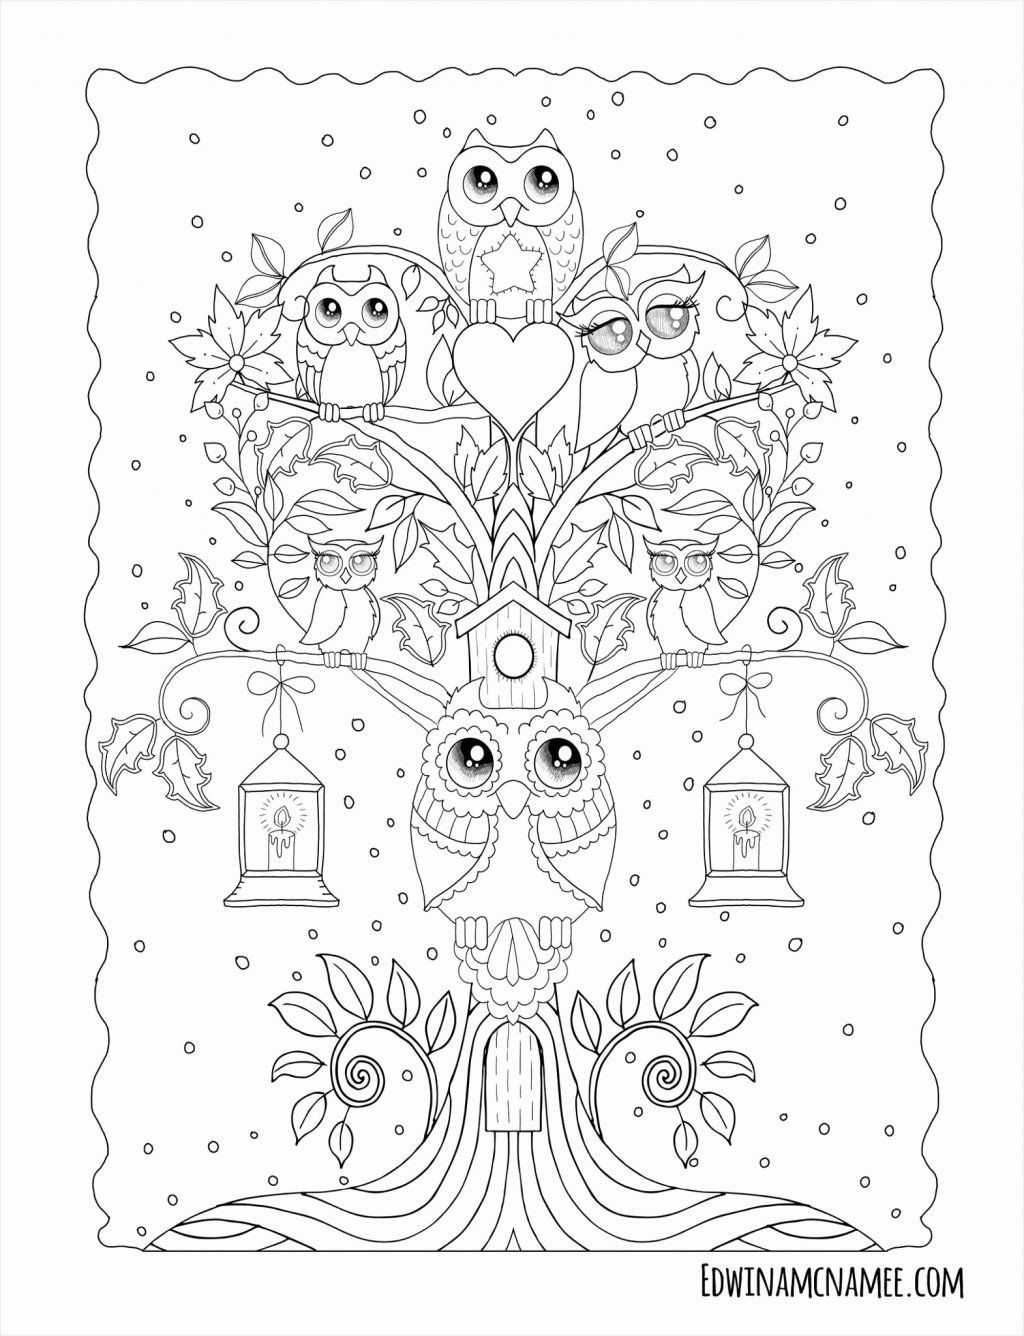 Coloring Book Of Shadows Best Of Coloring Pages Halloween Coloring Books In Bulk Christmas Owl Coloring Pages Abstract Coloring Pages Animal Coloring Books